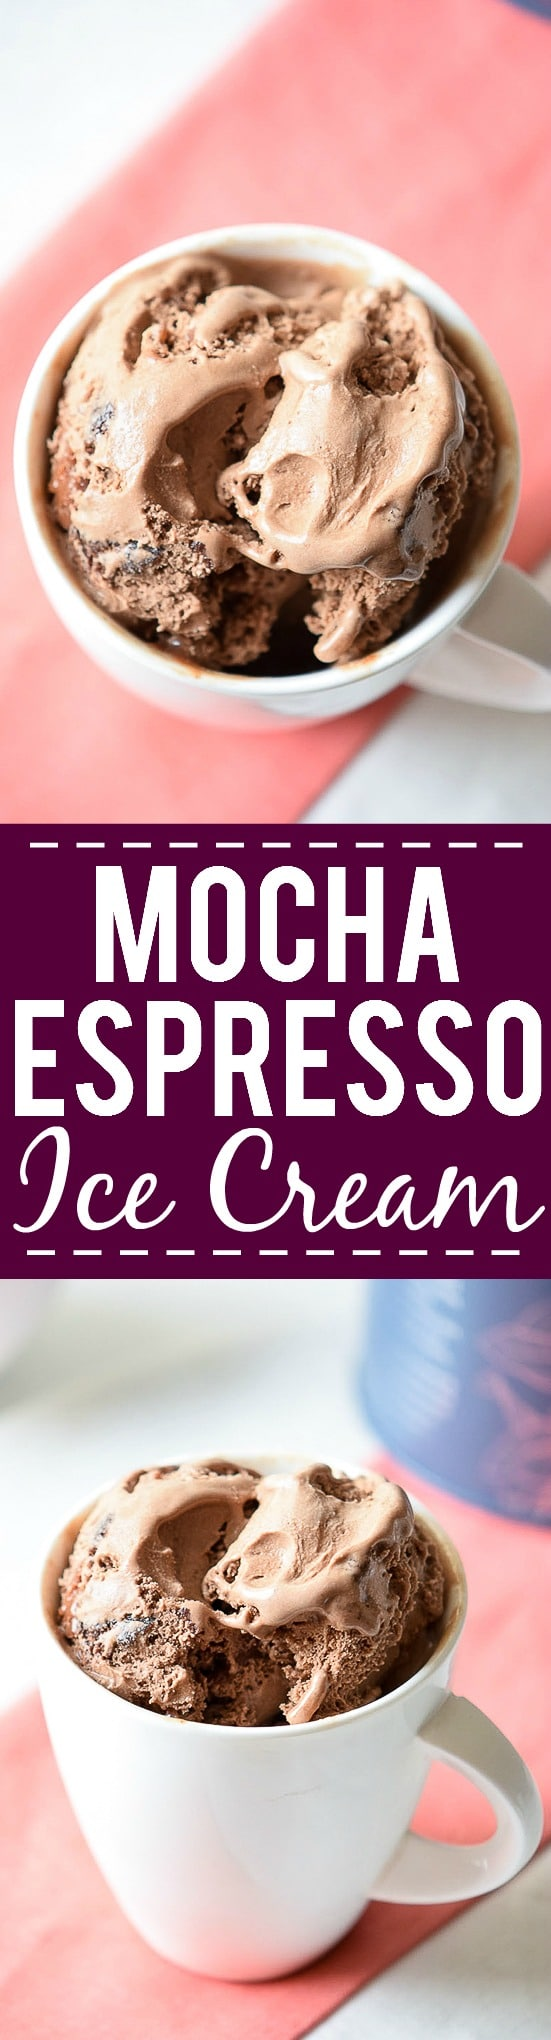 Mocha Espresso Ice Cream Recipe - You won't believe how easy it is to make your own homemade, no churn, rich and creamy Mocha Espresso Ice Cream with simple ingredients! Perfect for coffee and ice cream lovers! Love this easy no churn ice cream recipe!